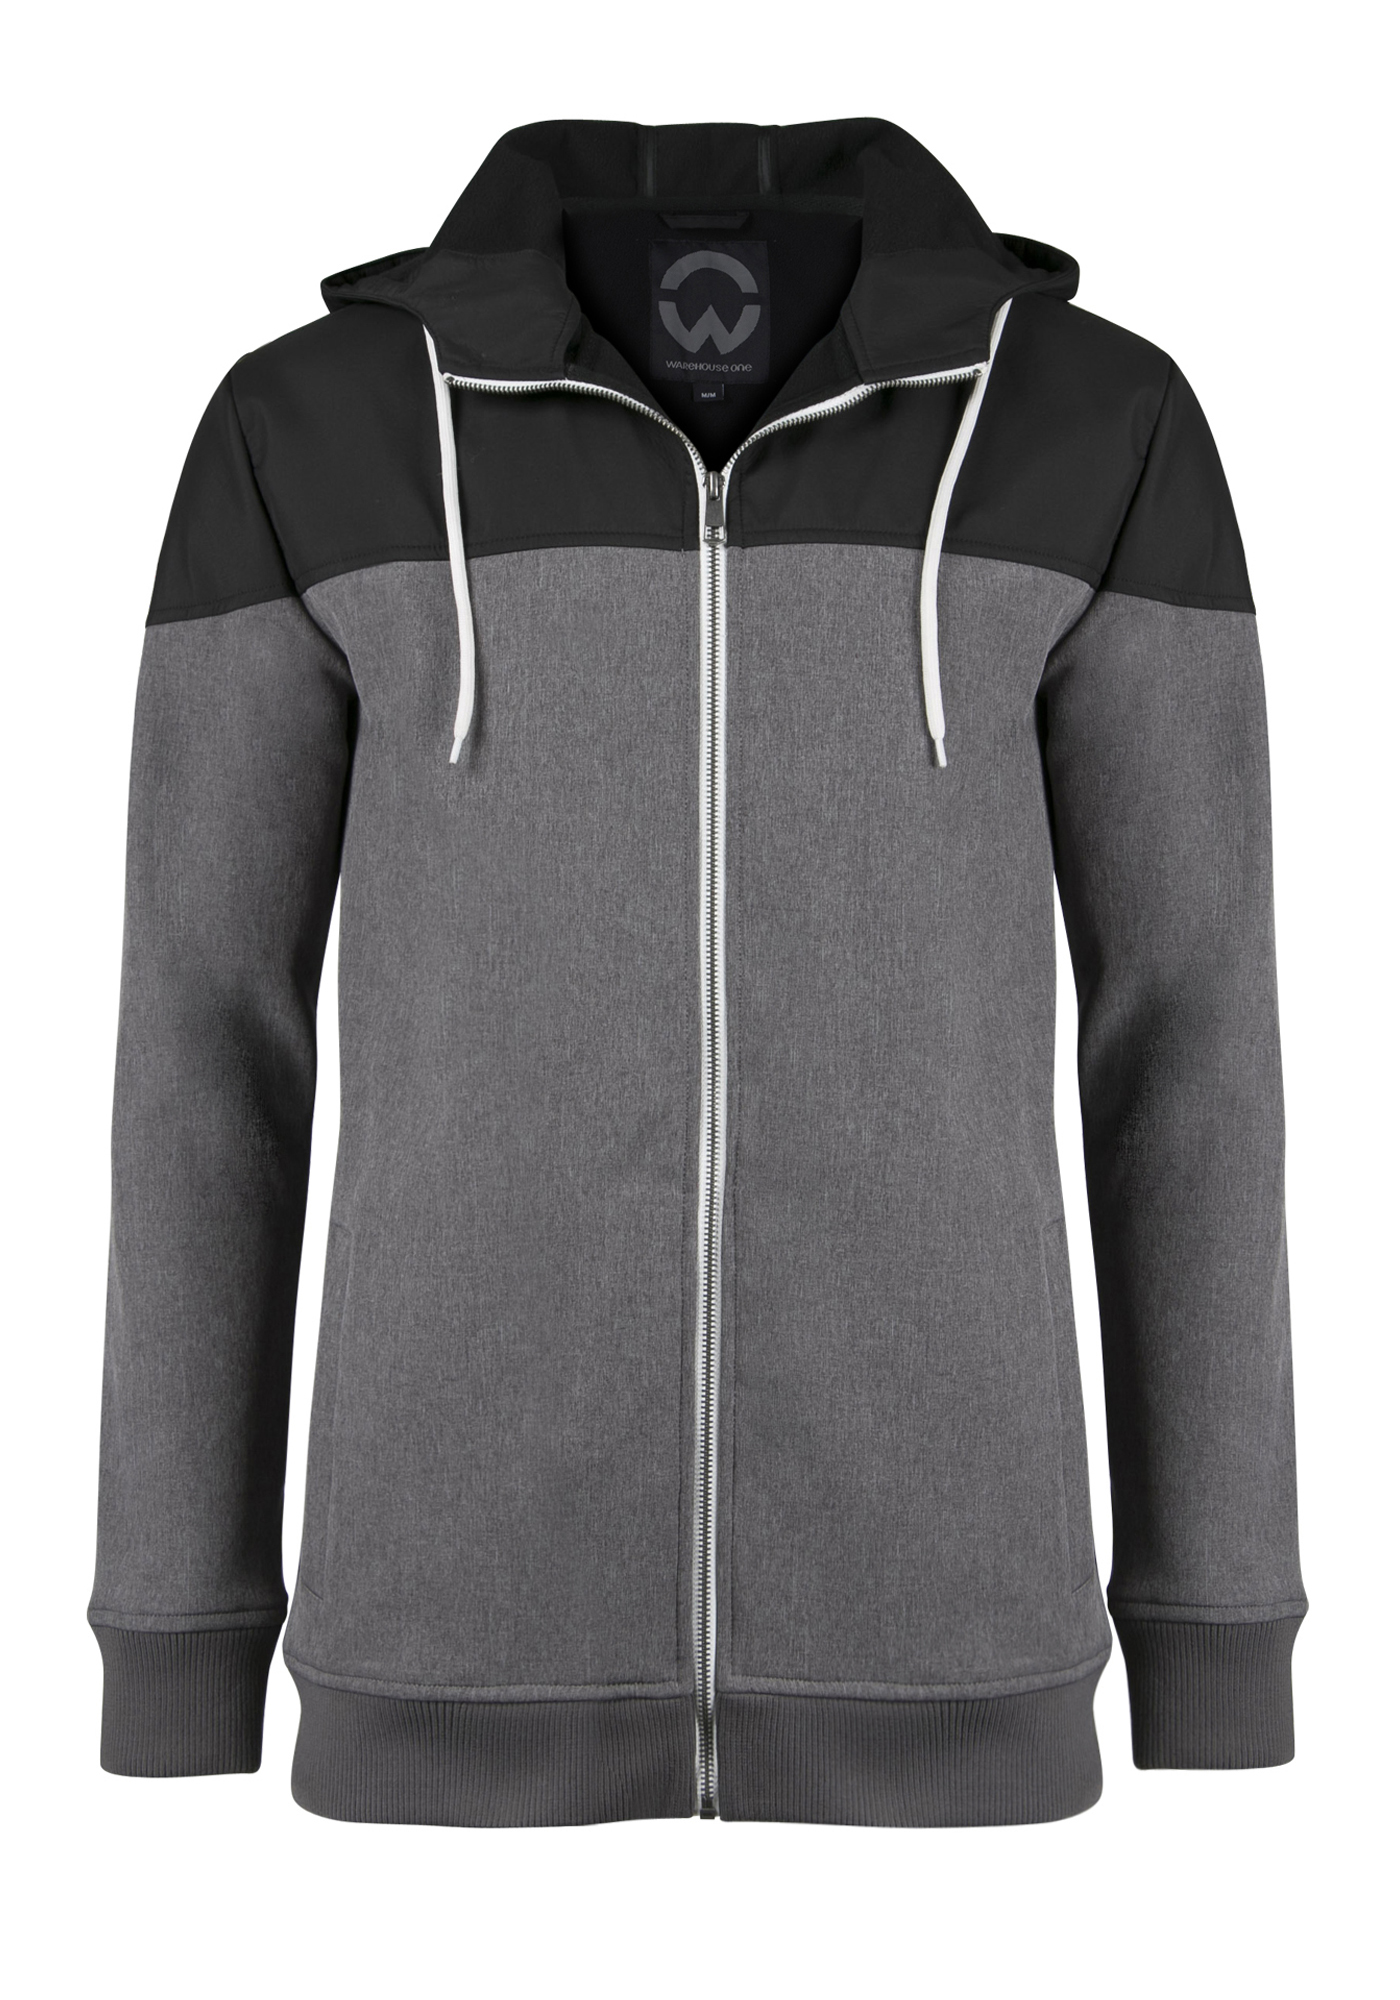 Men's Colour Block Softshell Jacket, CHARCOAL, hi-res